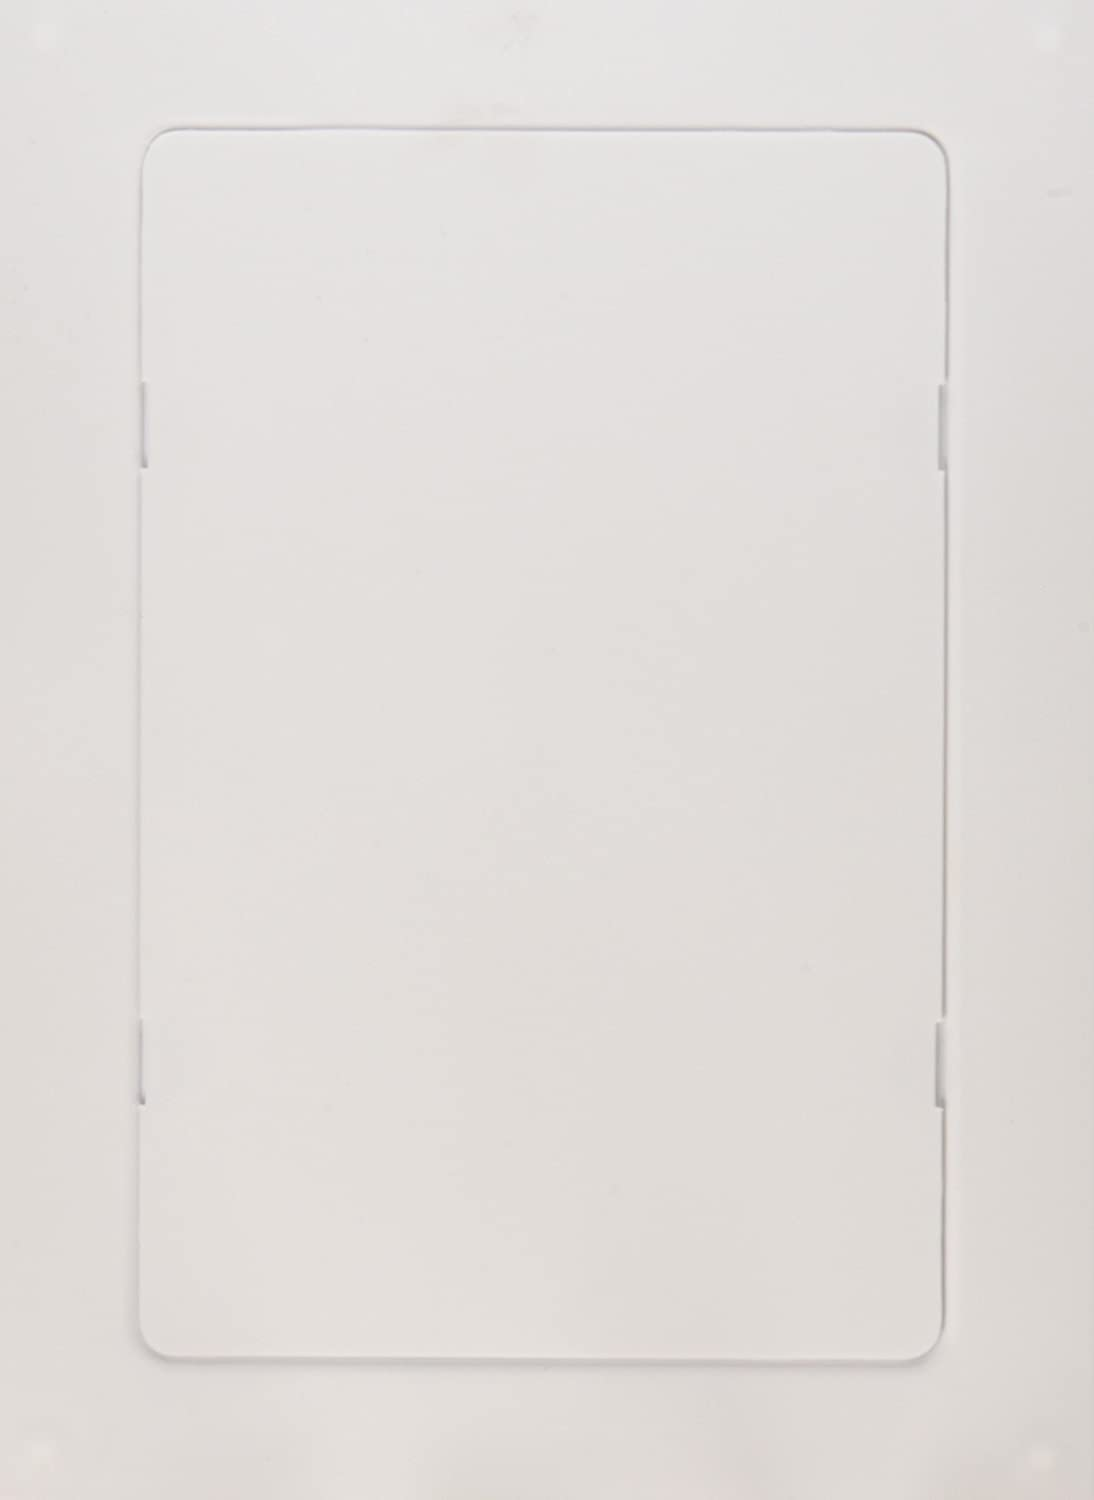 PlumBest A04006 Snap Ease Access Panel, White, 6-Inch by 9-Inch